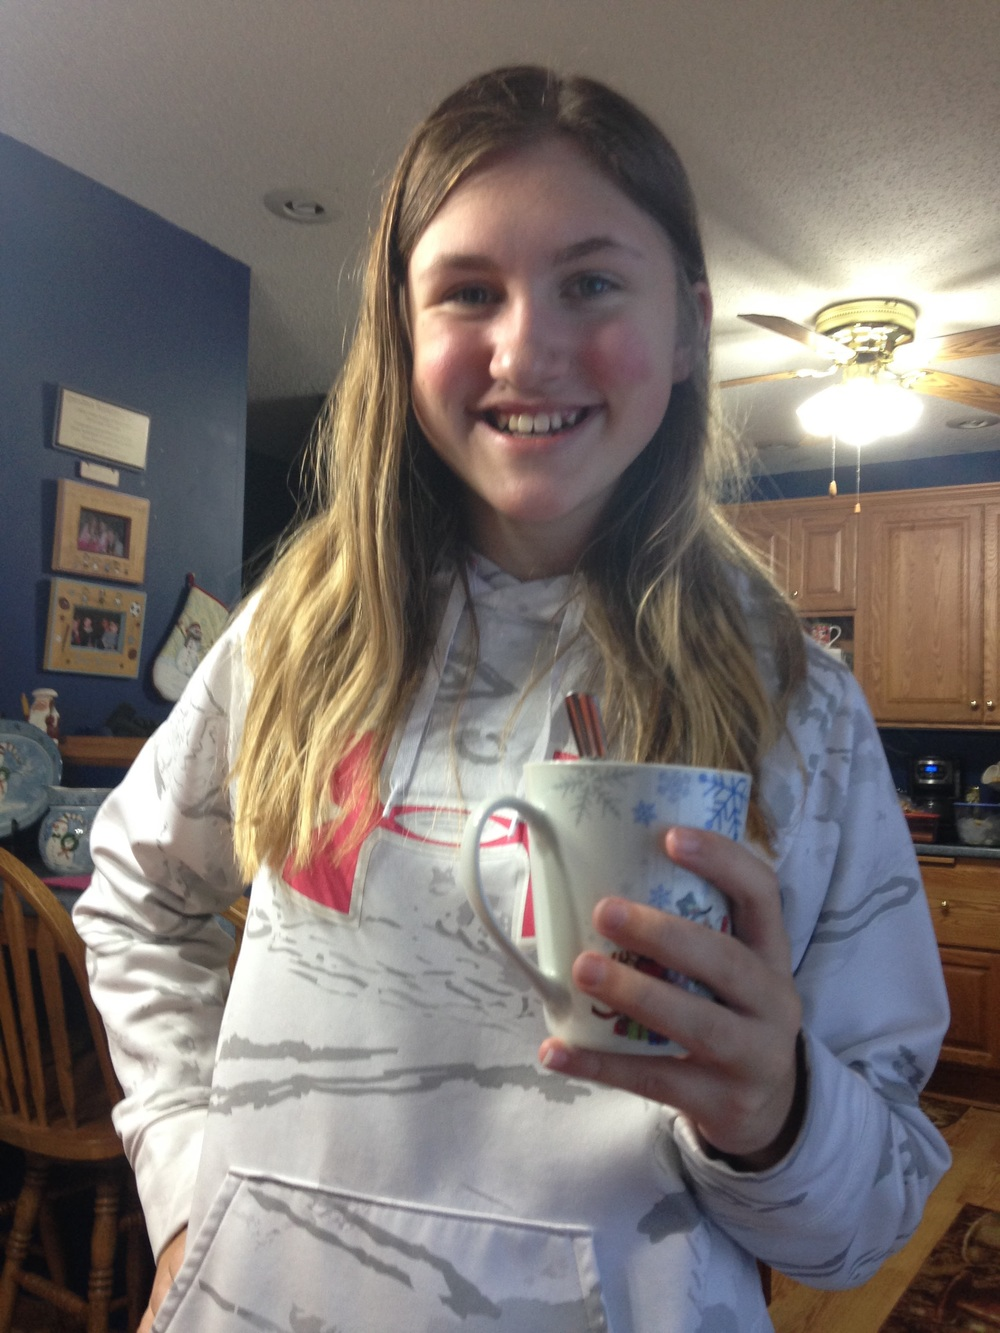 Ashlee-Holding-Hot-Chocolate.jpg